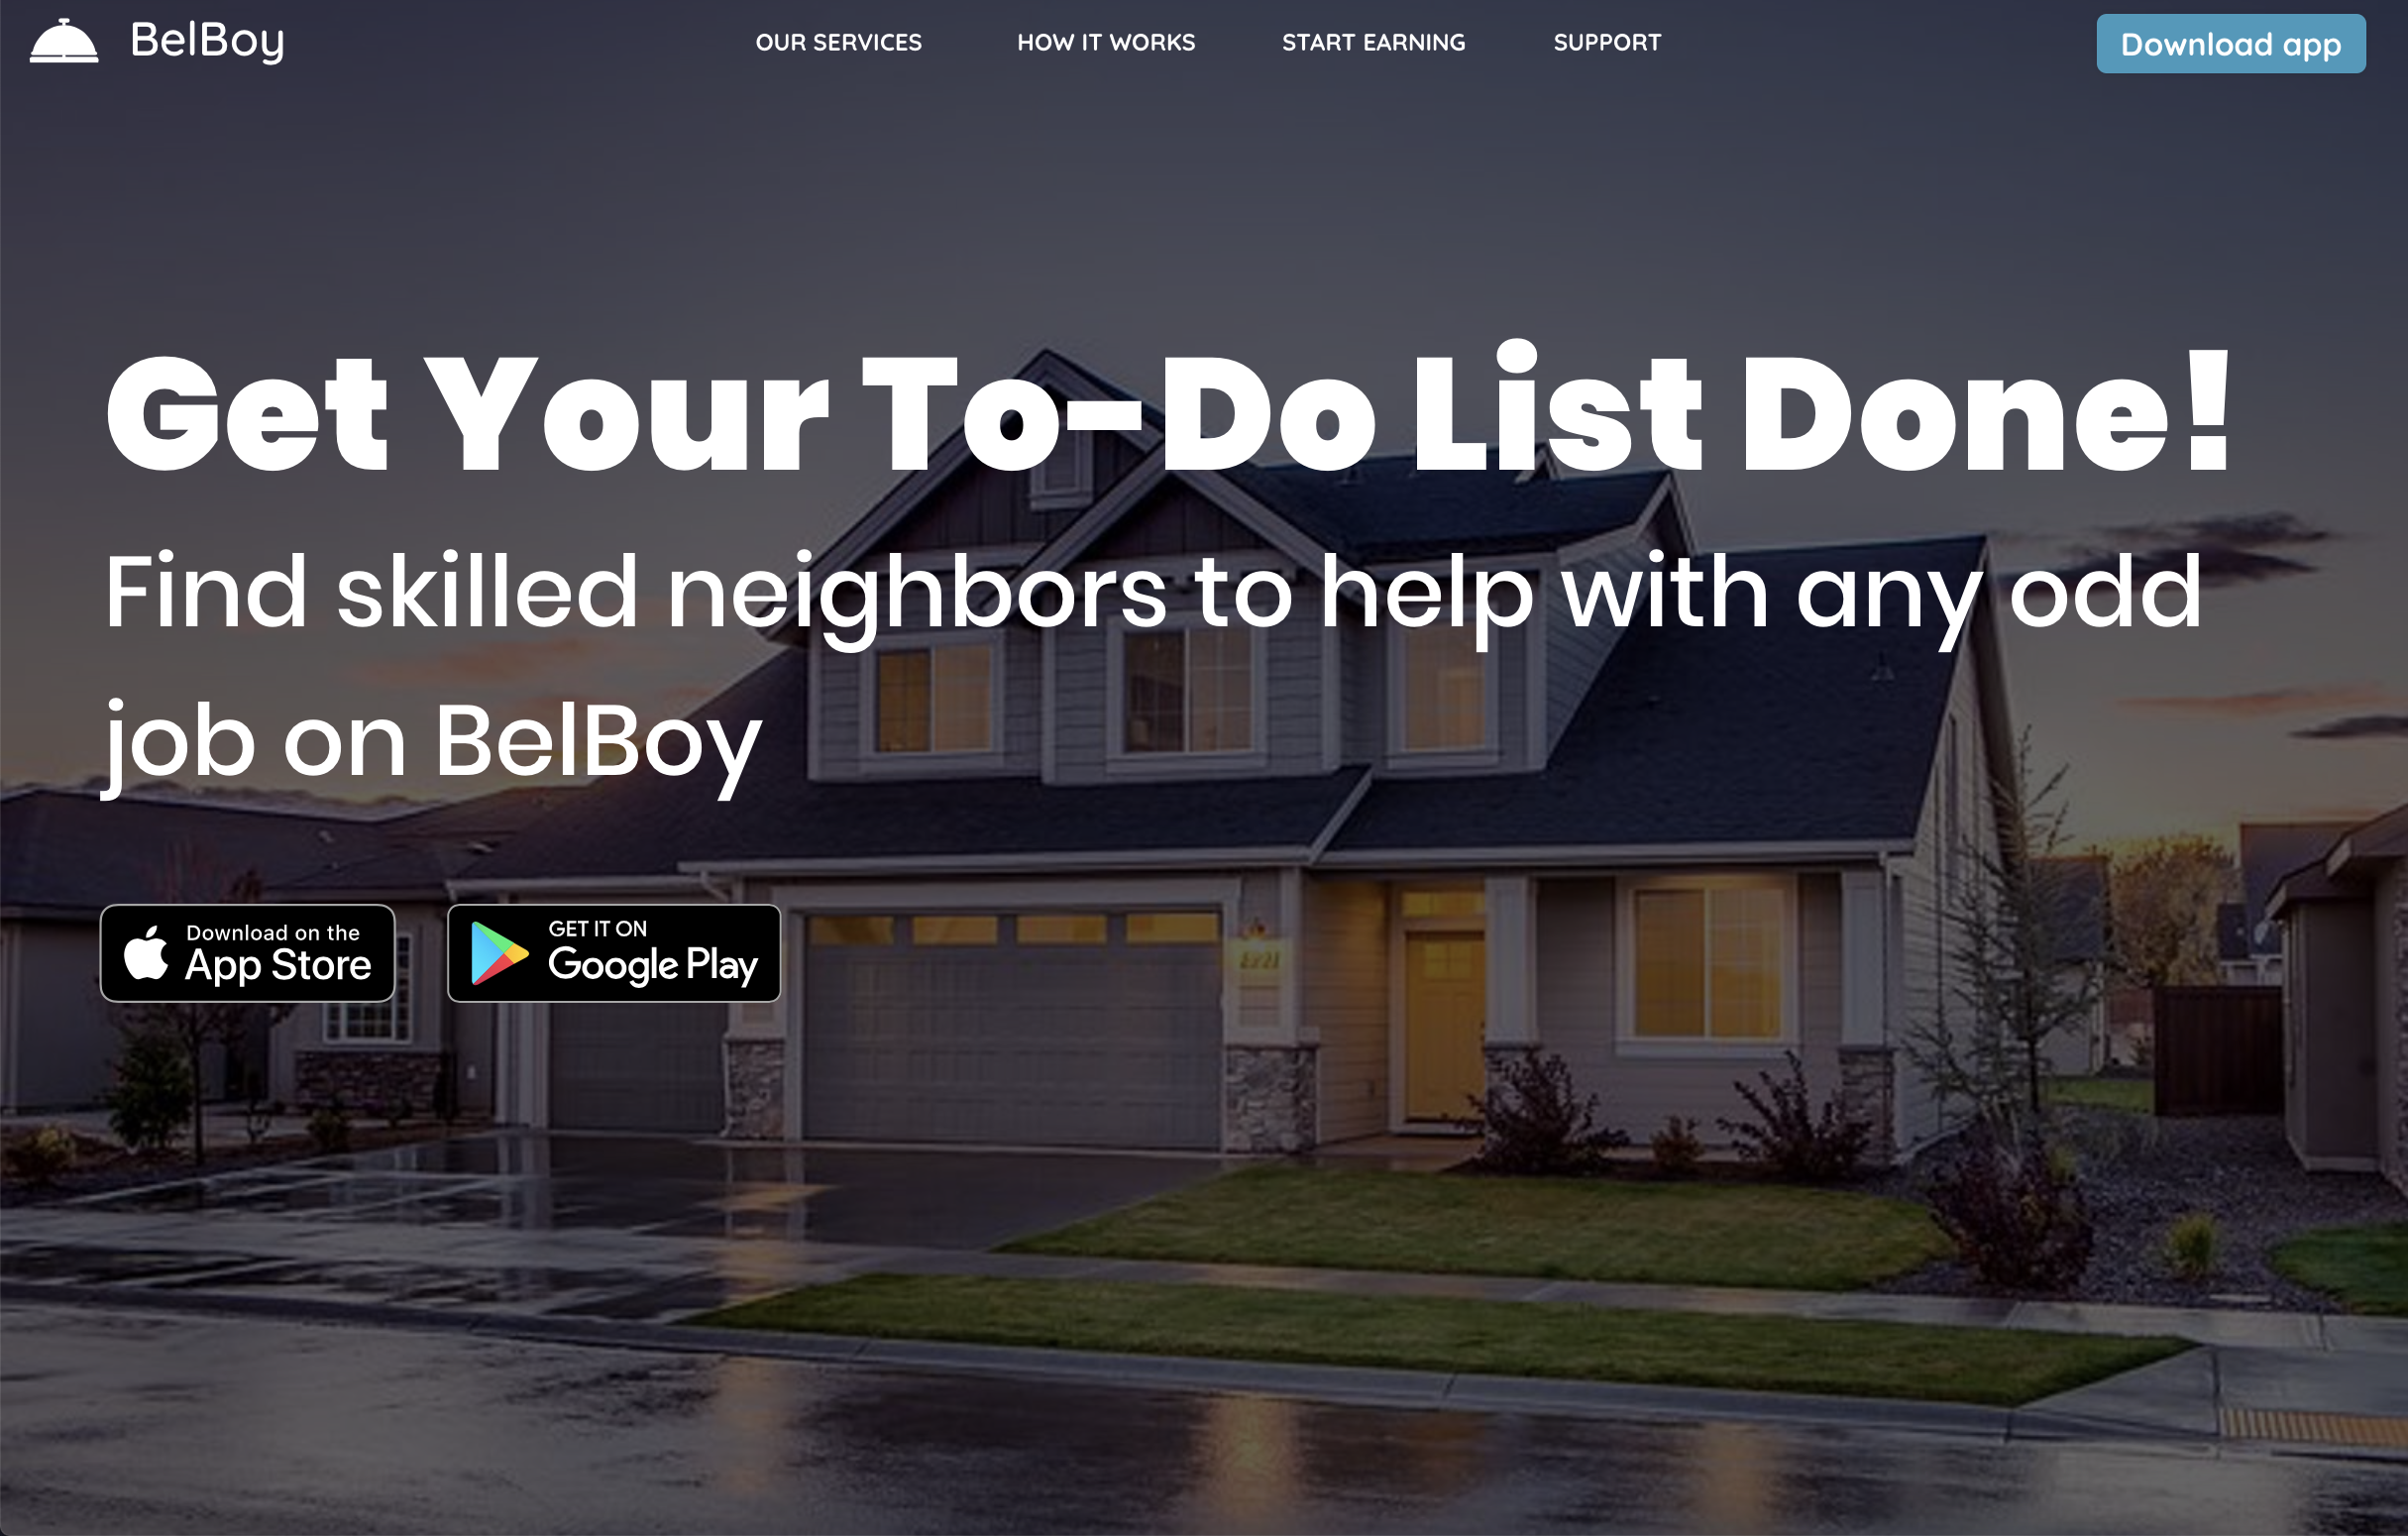 Hire skilled workers & earn extra cash on BelBoy com